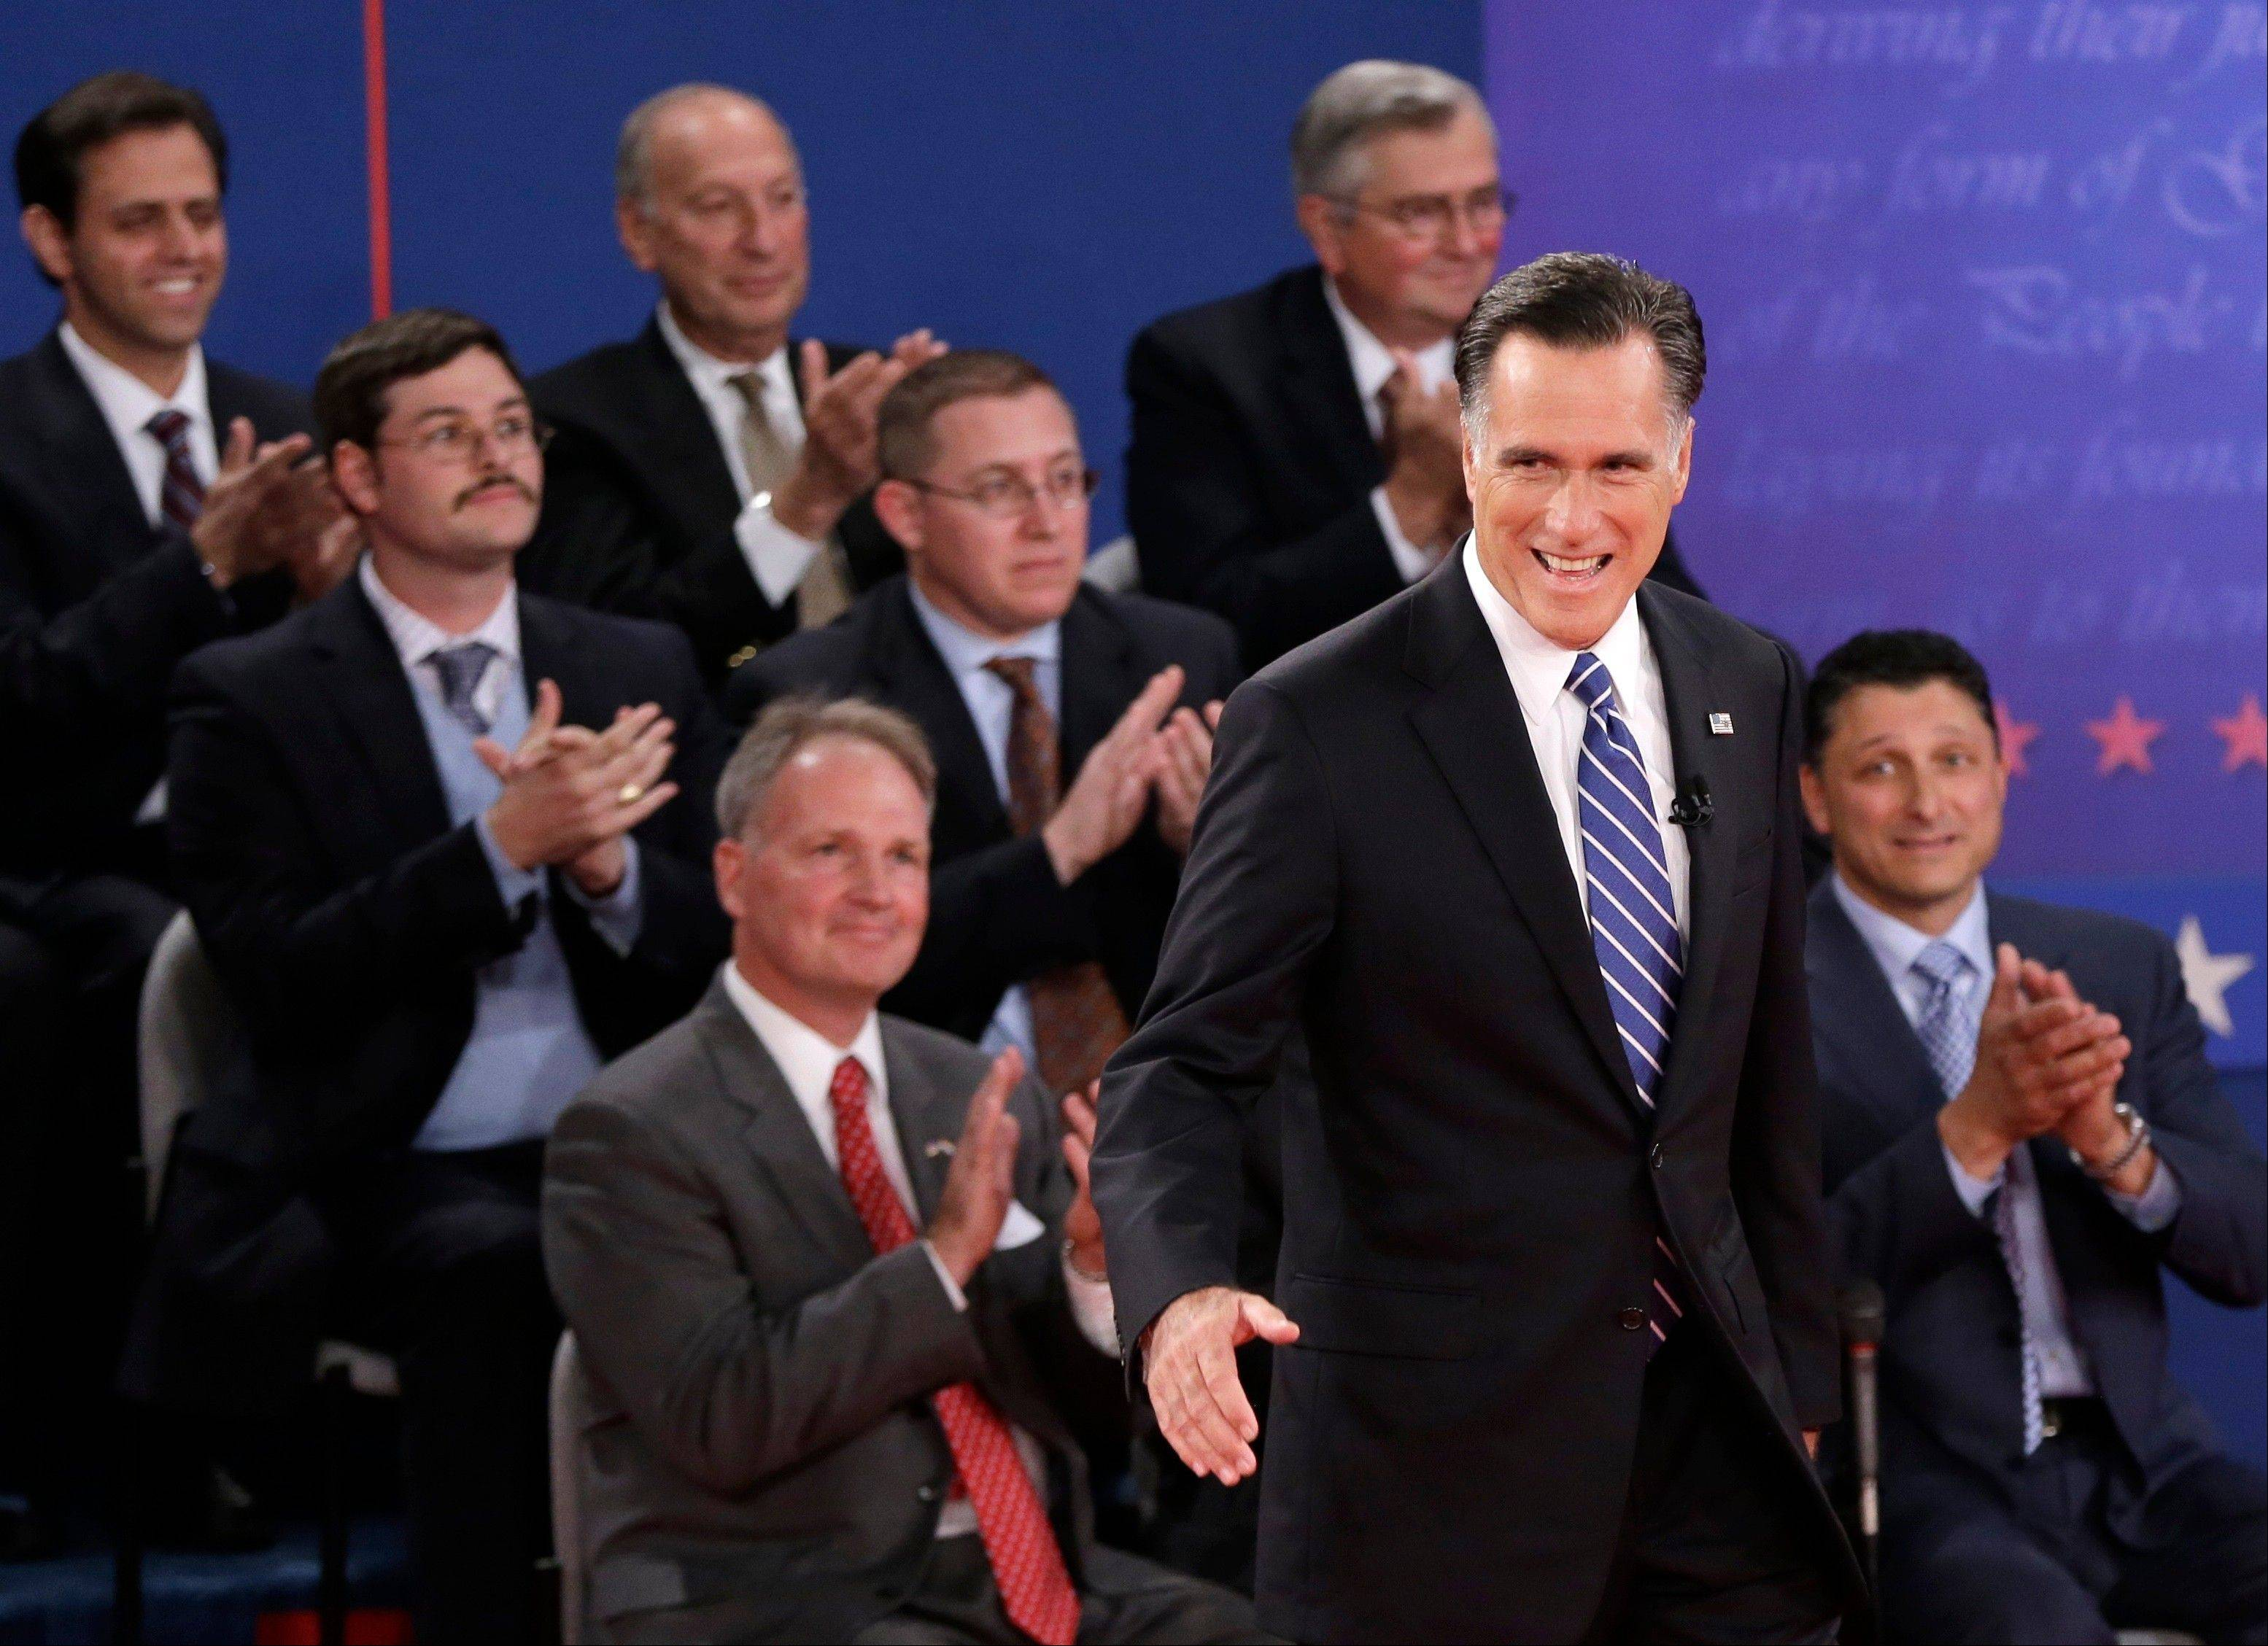 Members of the audience applaud as Republican presidential nominee Mitt Romney arrives for the second presidential debate at Hofstra University, Tuesday, Oct. 16, 2012, in Hempstead, N.Y.